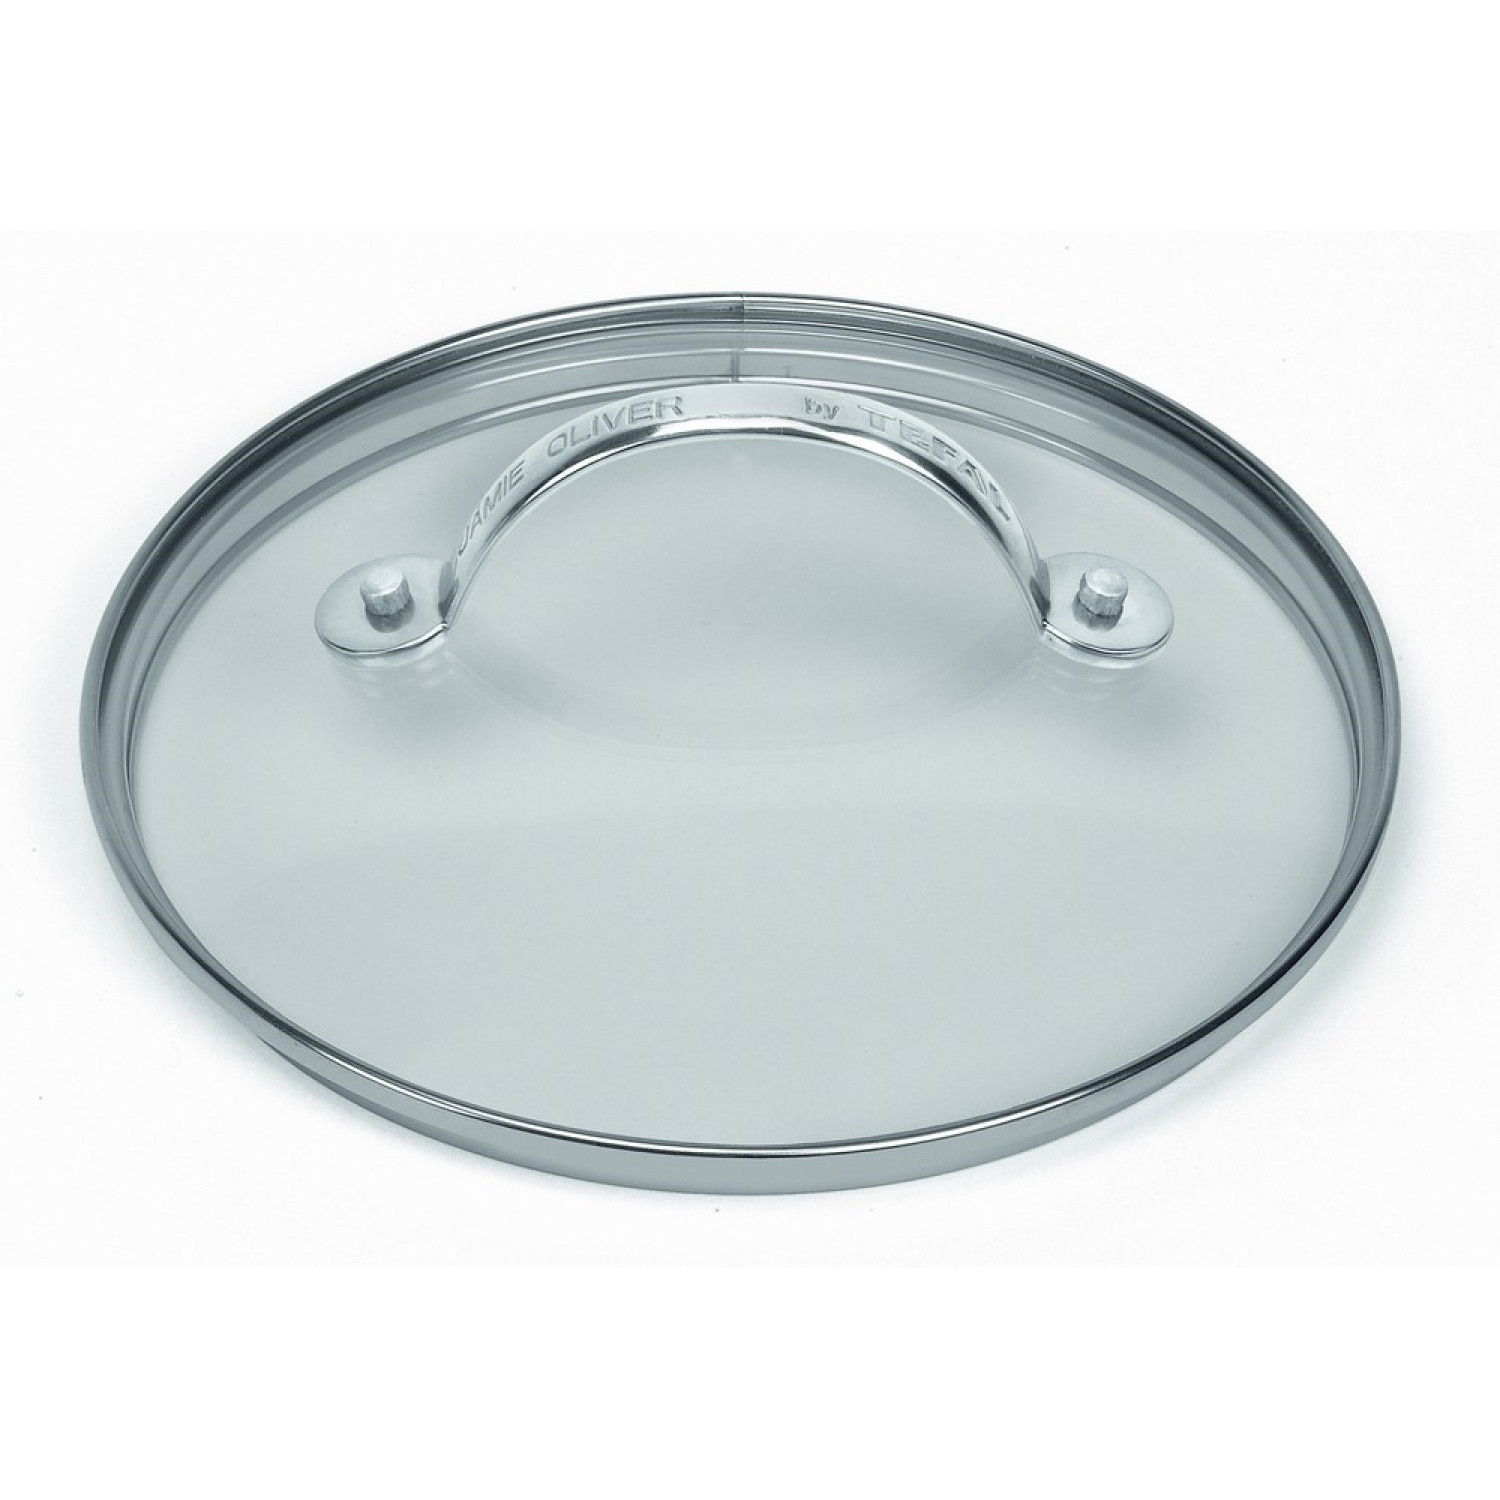 Couvercle - 30 cm - Jamie Oliver professional series - E9999932